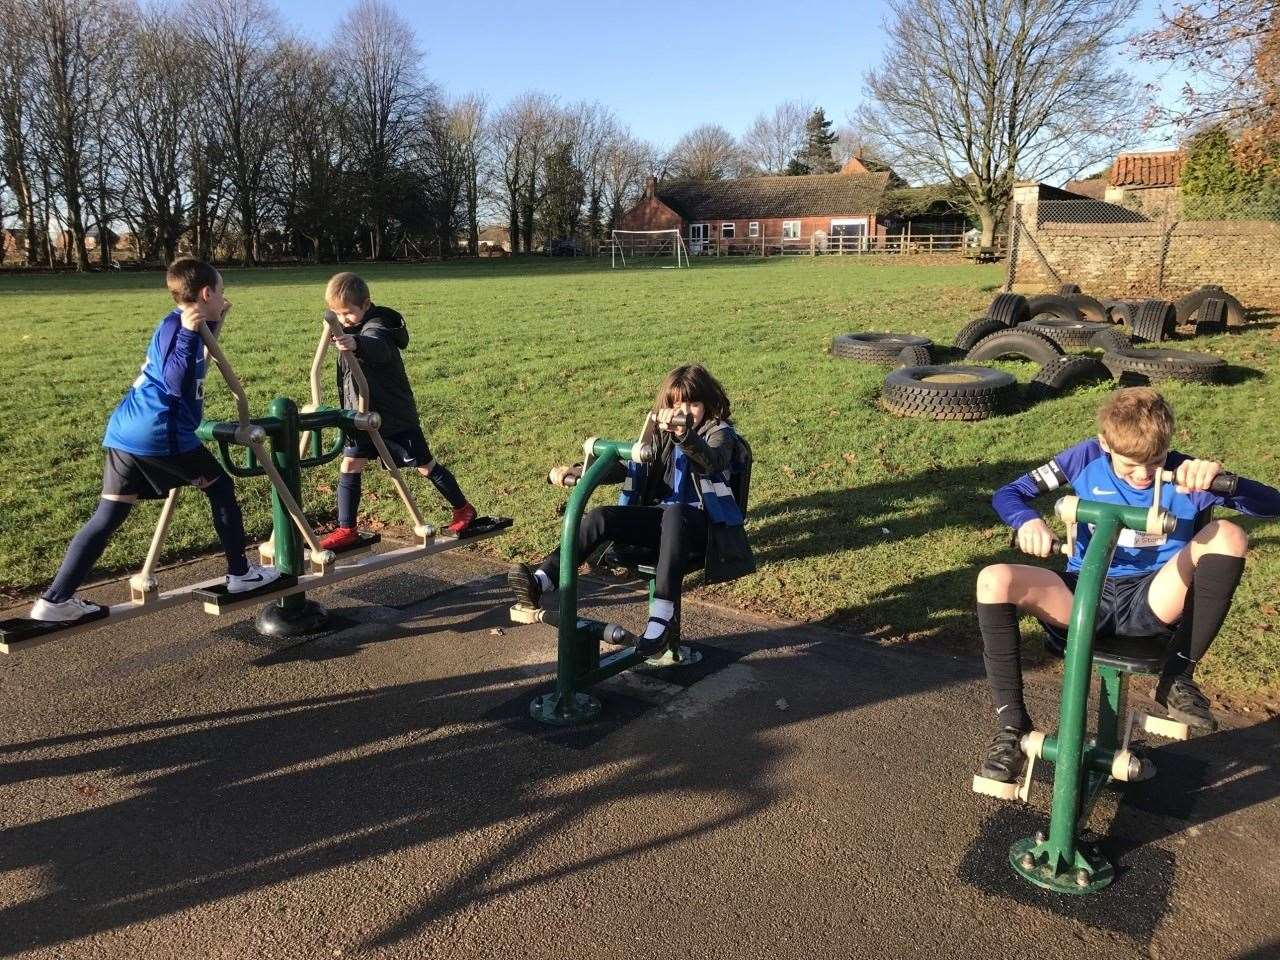 Noah Hutton, 10, Arion Woodward,11, and Ollie Harness, 11, enjoying Caythorpe Primary School's outdoor gym.